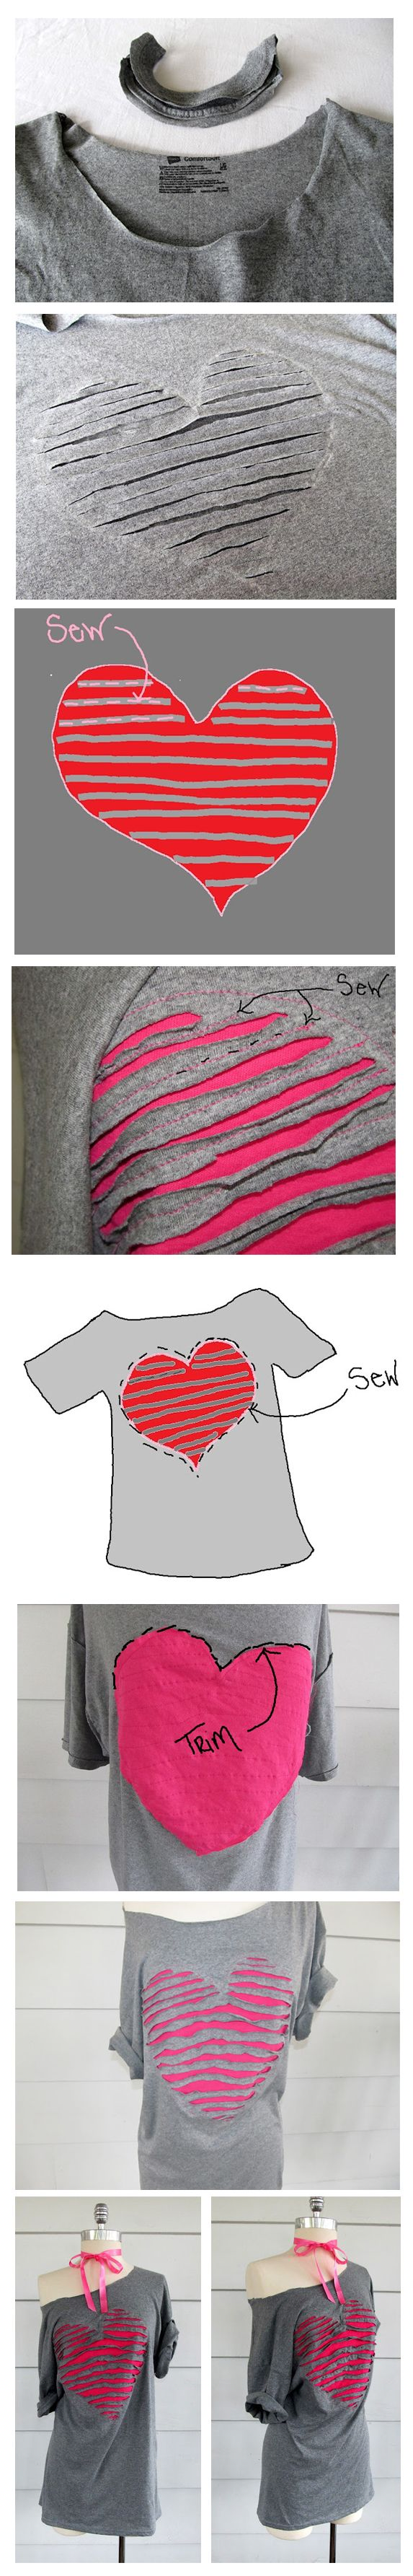 maybe this one too... cute t-shirt!